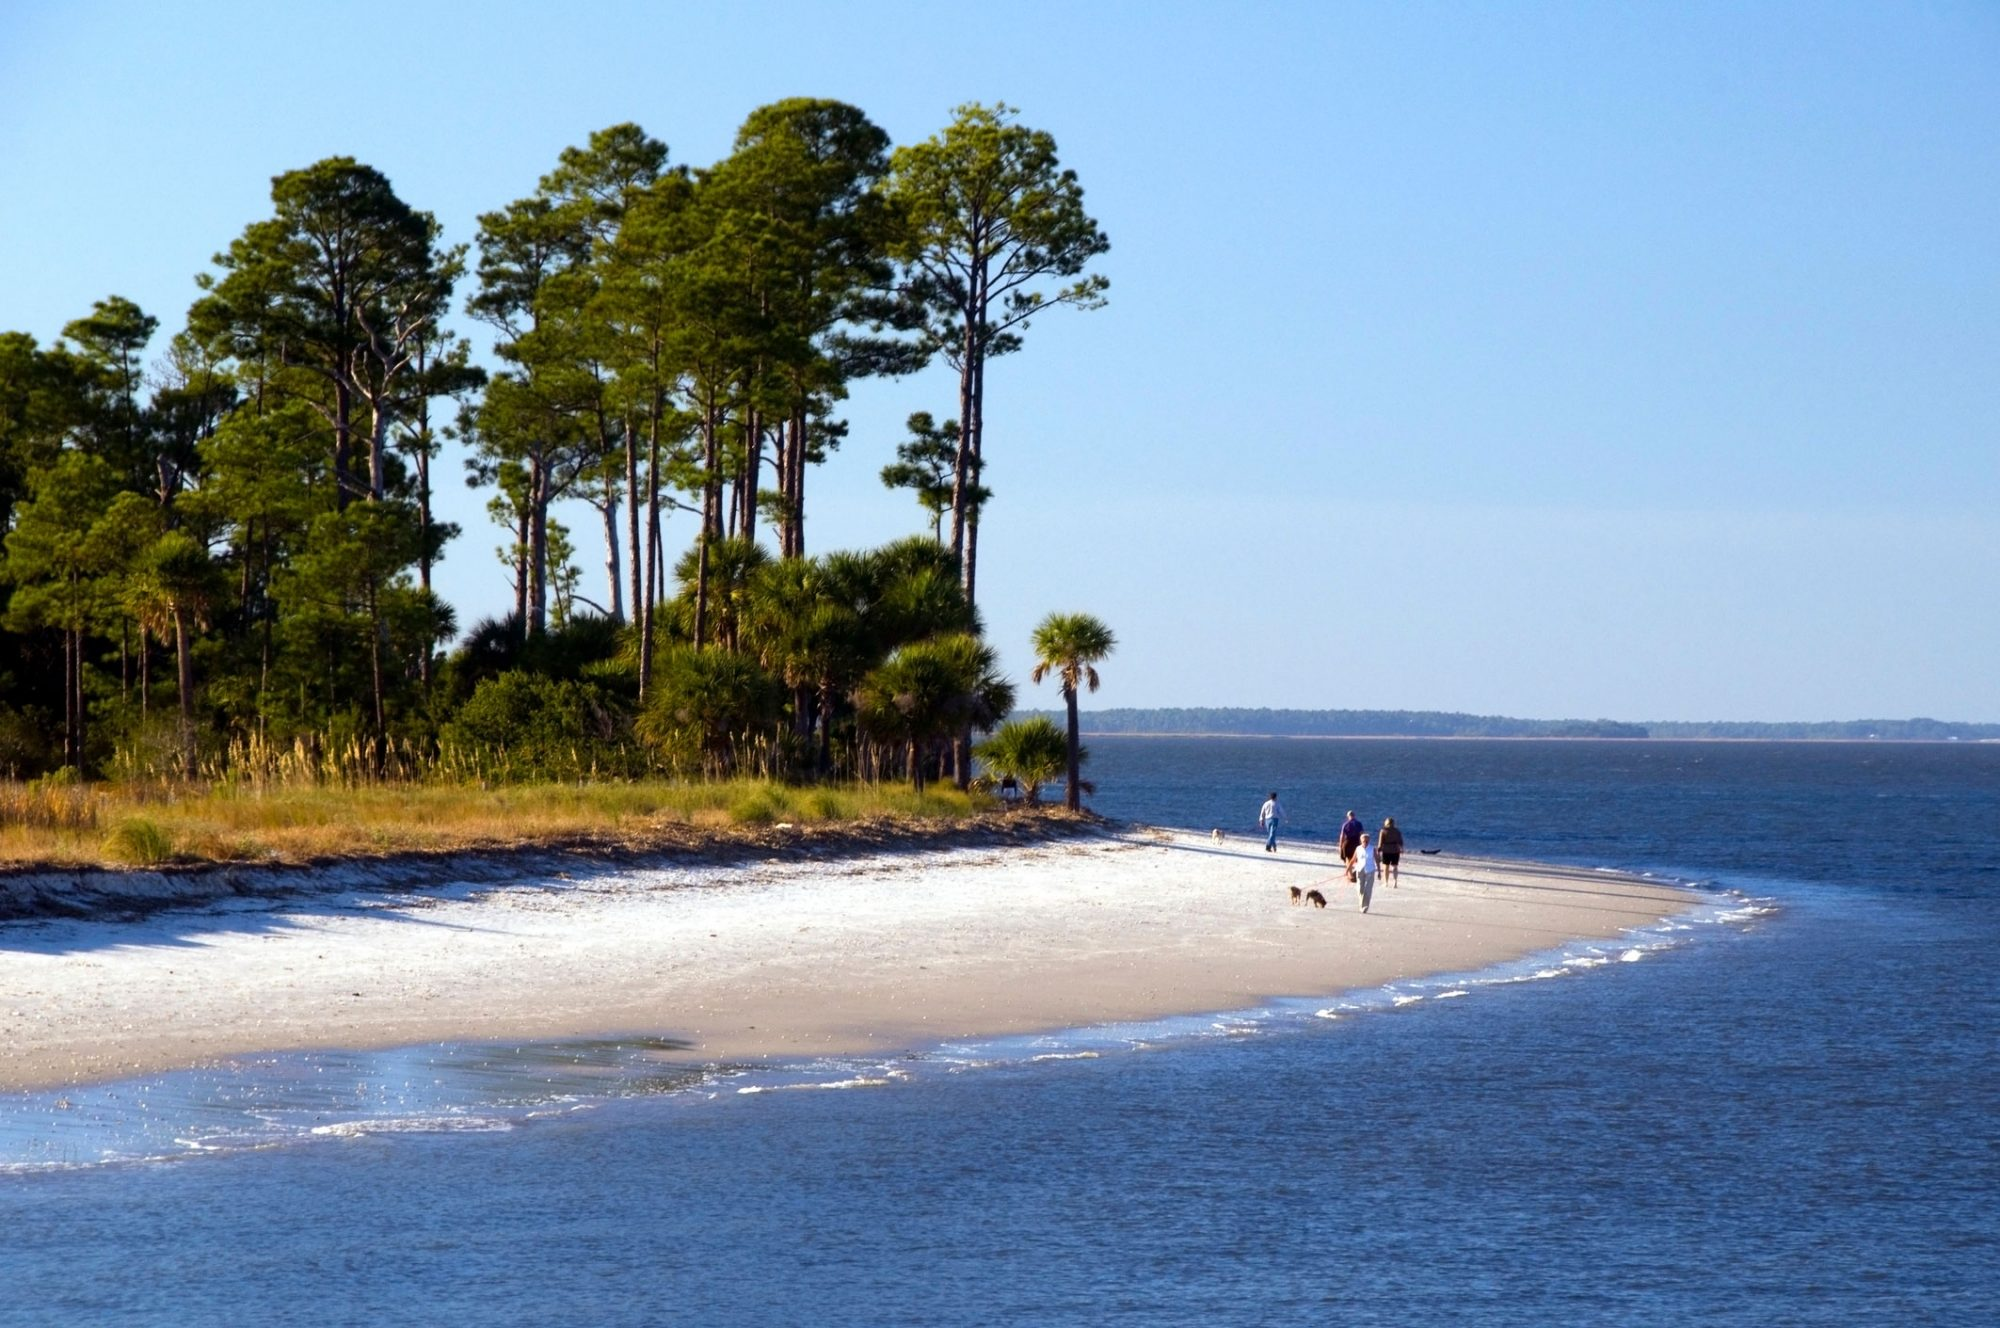 Dolphin Beach at Hilton Head, South Carolina